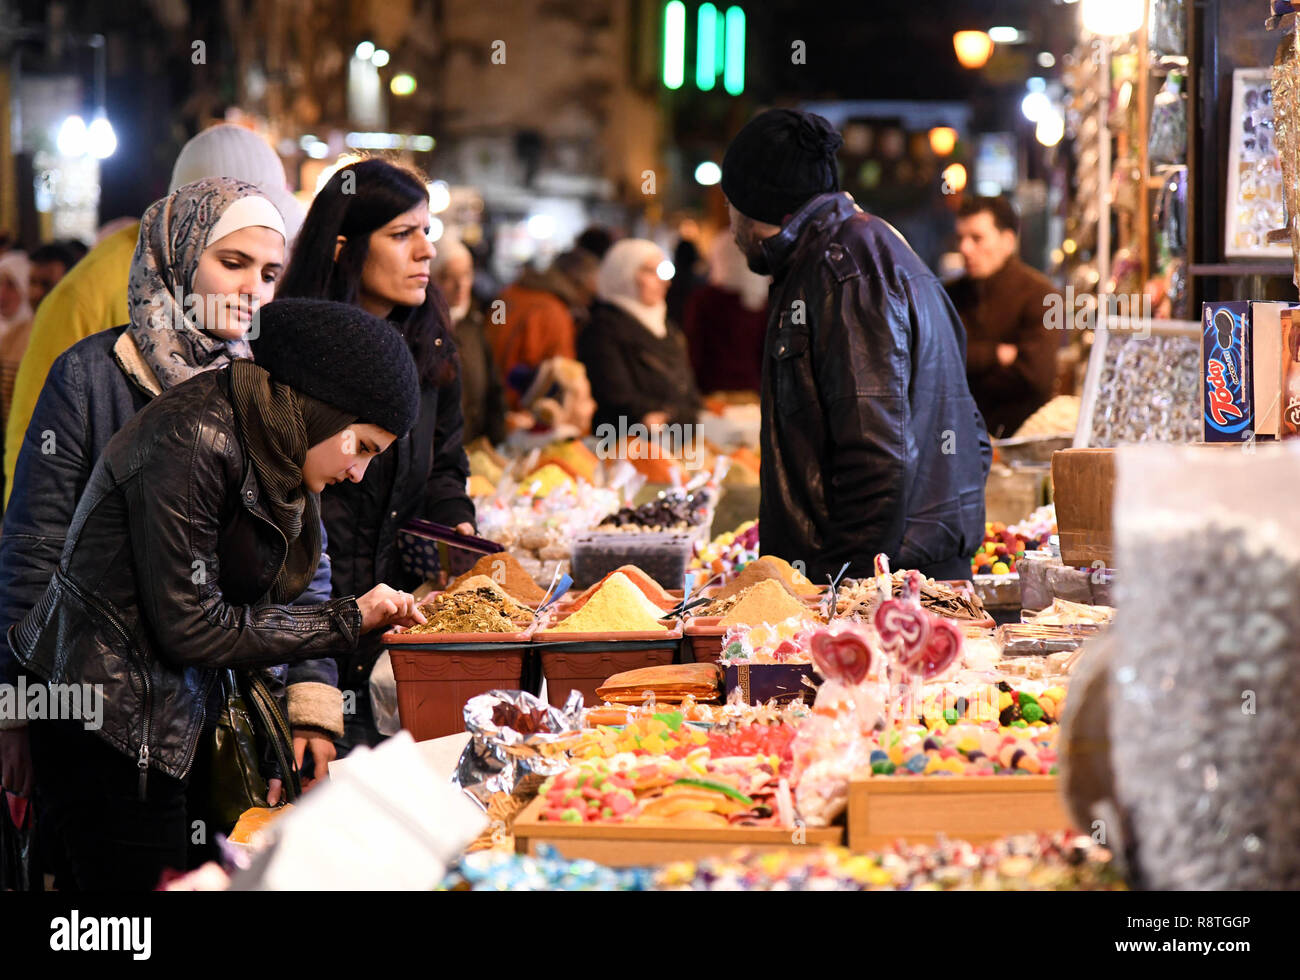 Damascus, Syria. 17th Dec, 2018. Syrian women shop at a marketplace in the old city of Damascus, capital of Syria, on Dec. 17, 2018. As Christmas and the New Year approach, Syrians in Damascus shopped for gifts, candies and decorations at marketplaces. Credit: Ammar Safarjalani/Xinhua/Alamy Live News - Stock Image